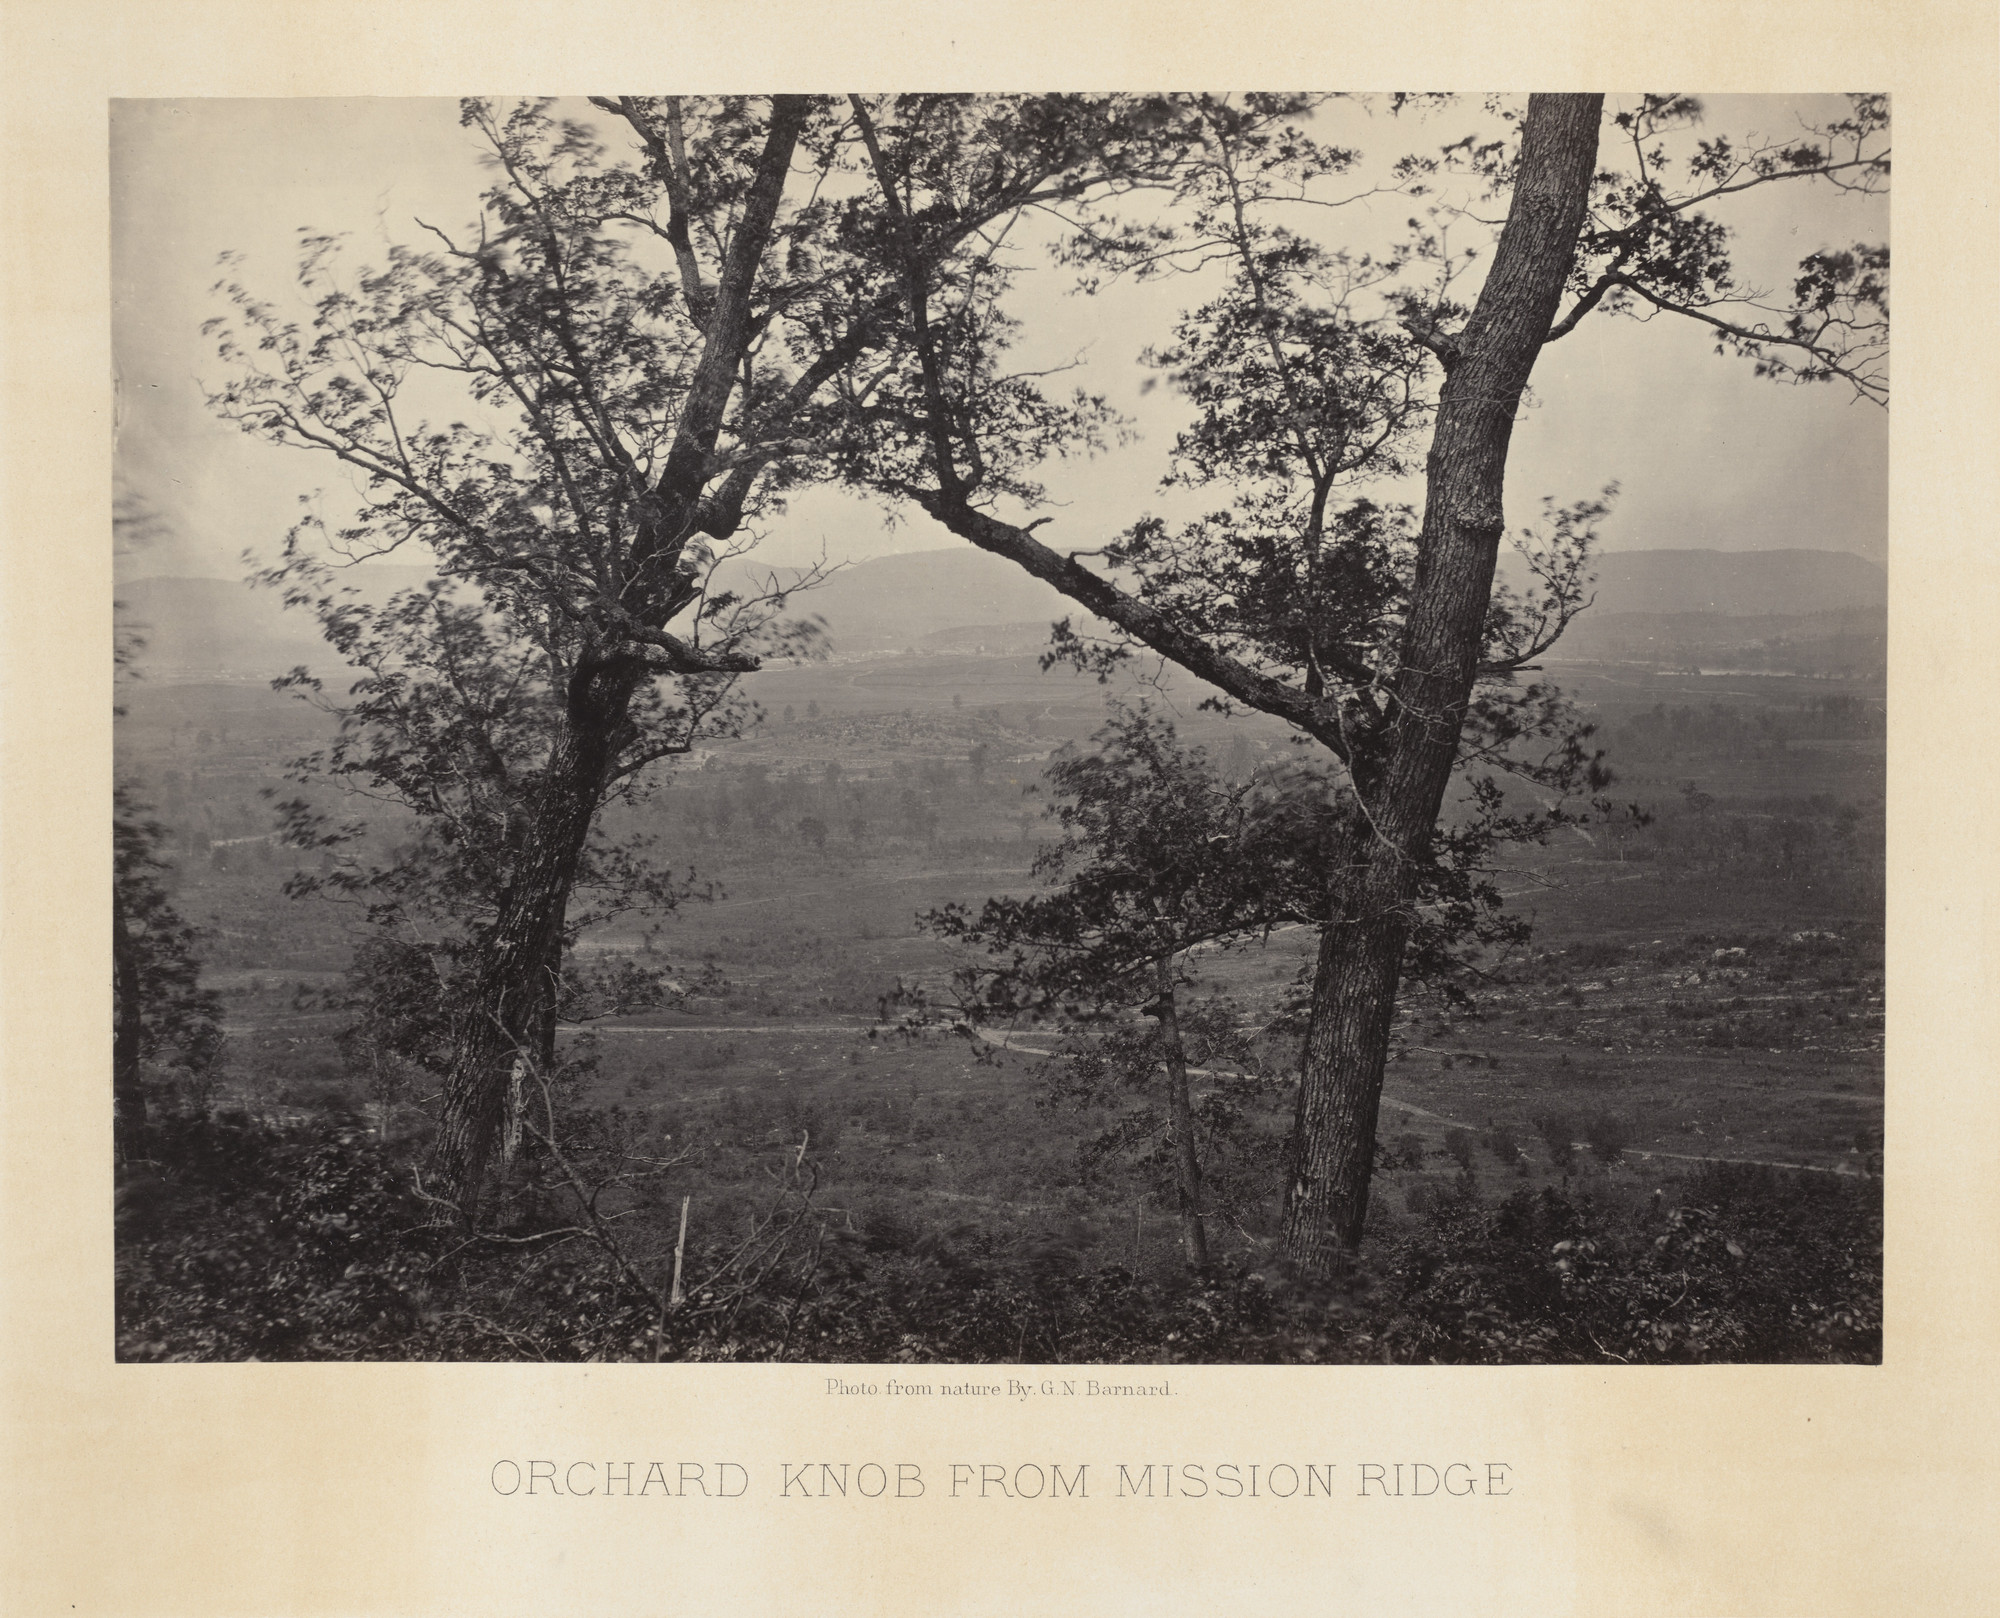 George Barnard. Orchard Knob, from Mission Ridge from the album Photographic Views of Sherman's Campaign. 1864-65